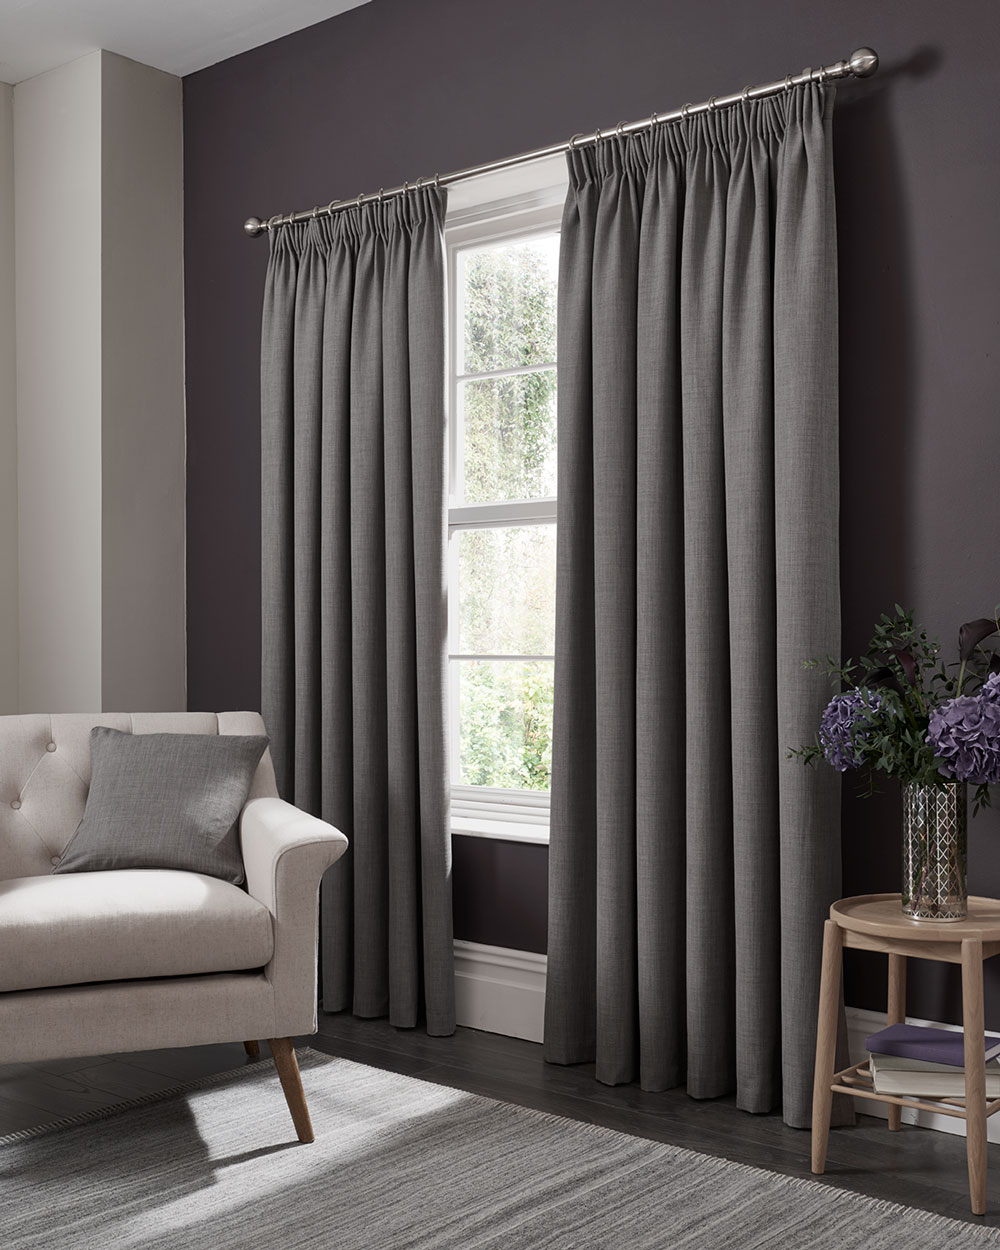 Studio G Elba Pencil Pleat Curtains  Grey Ready Made Curtains - Product code: M1105/02/90X5